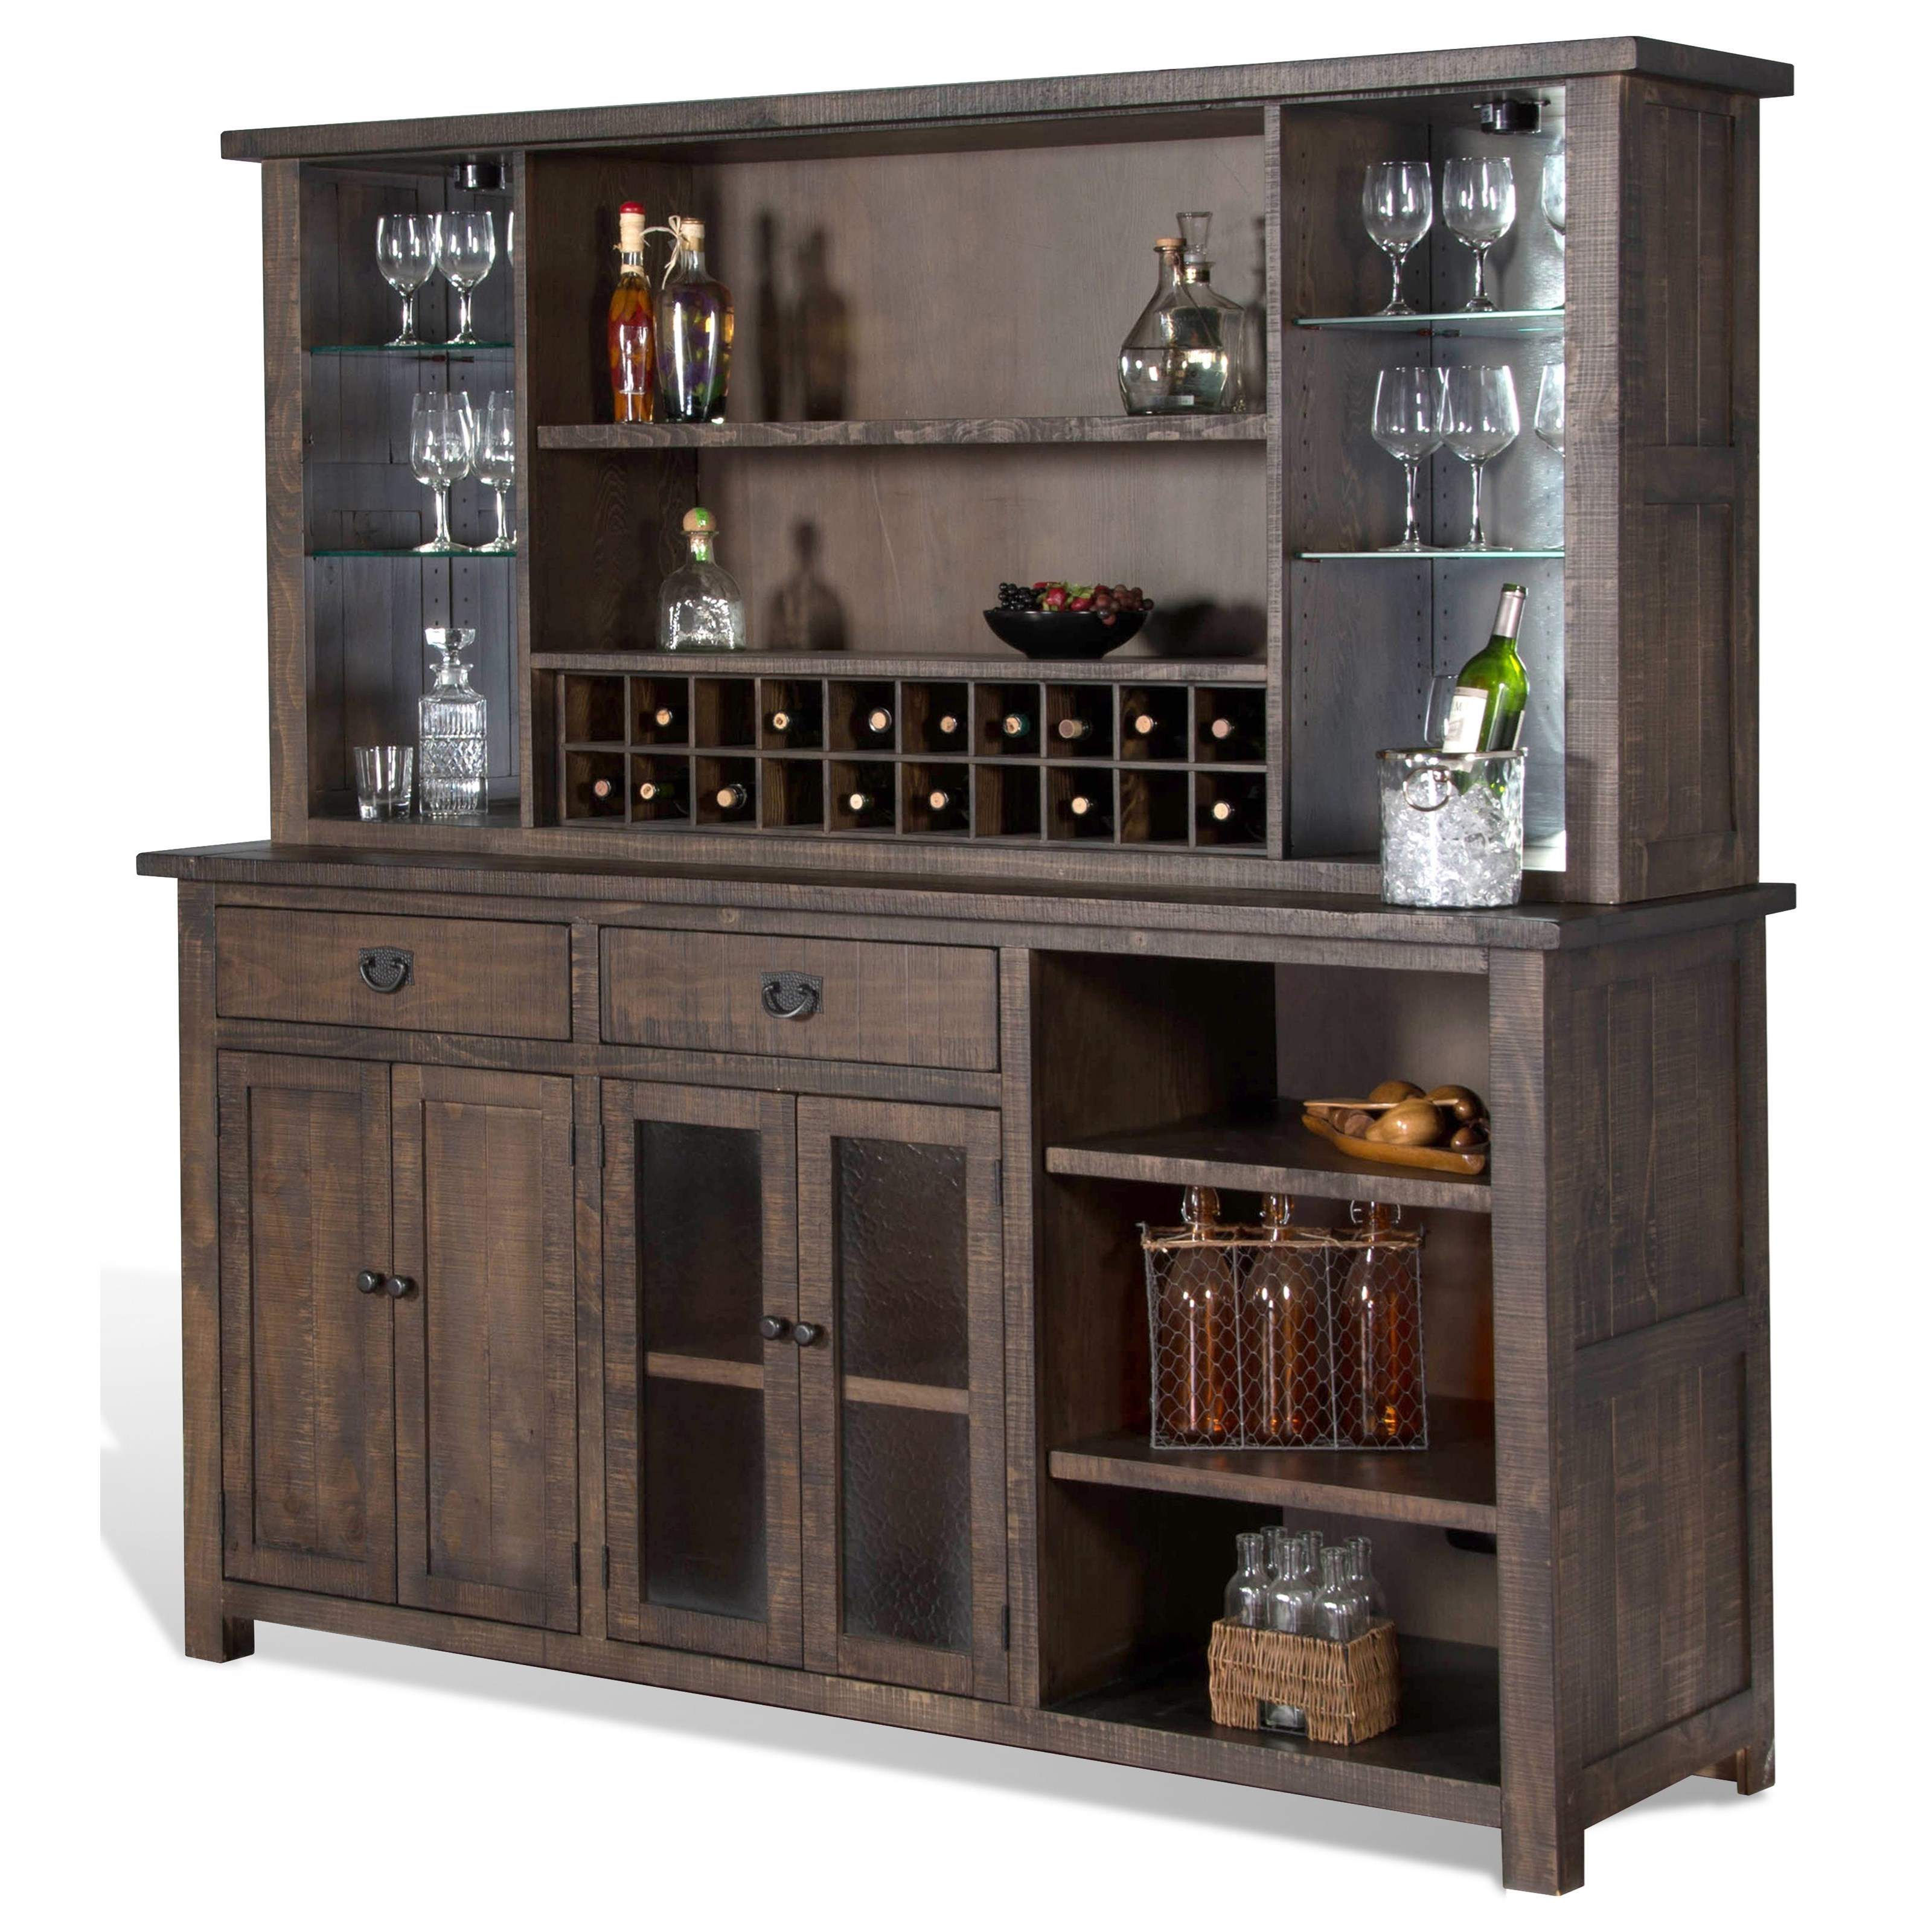 Sunny Designs Homestead 2 Rustic Back Bar With Wine Bottle